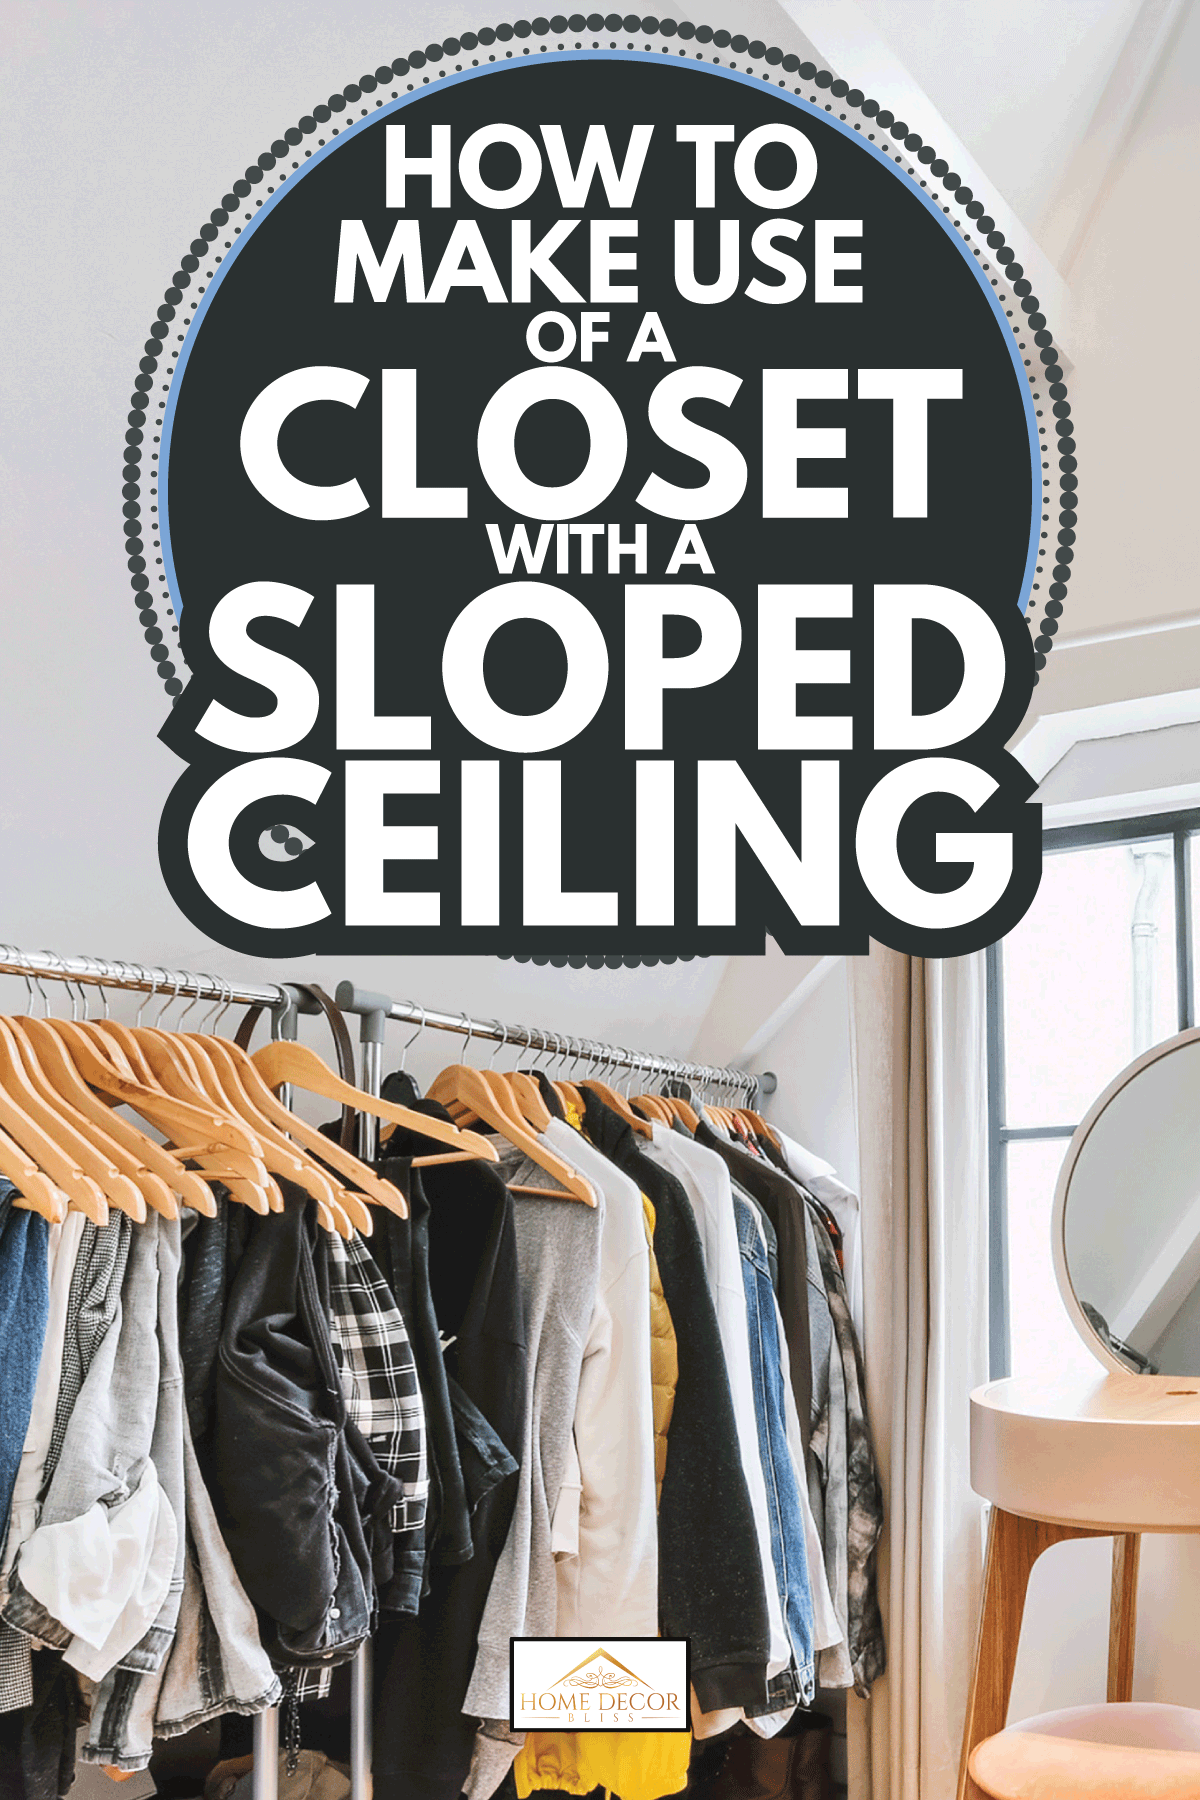 House wardrobe room with small table and pouf among racks of clothes and shoes on floor. How To Make Use Of A Closet With A Sloped Ceiling